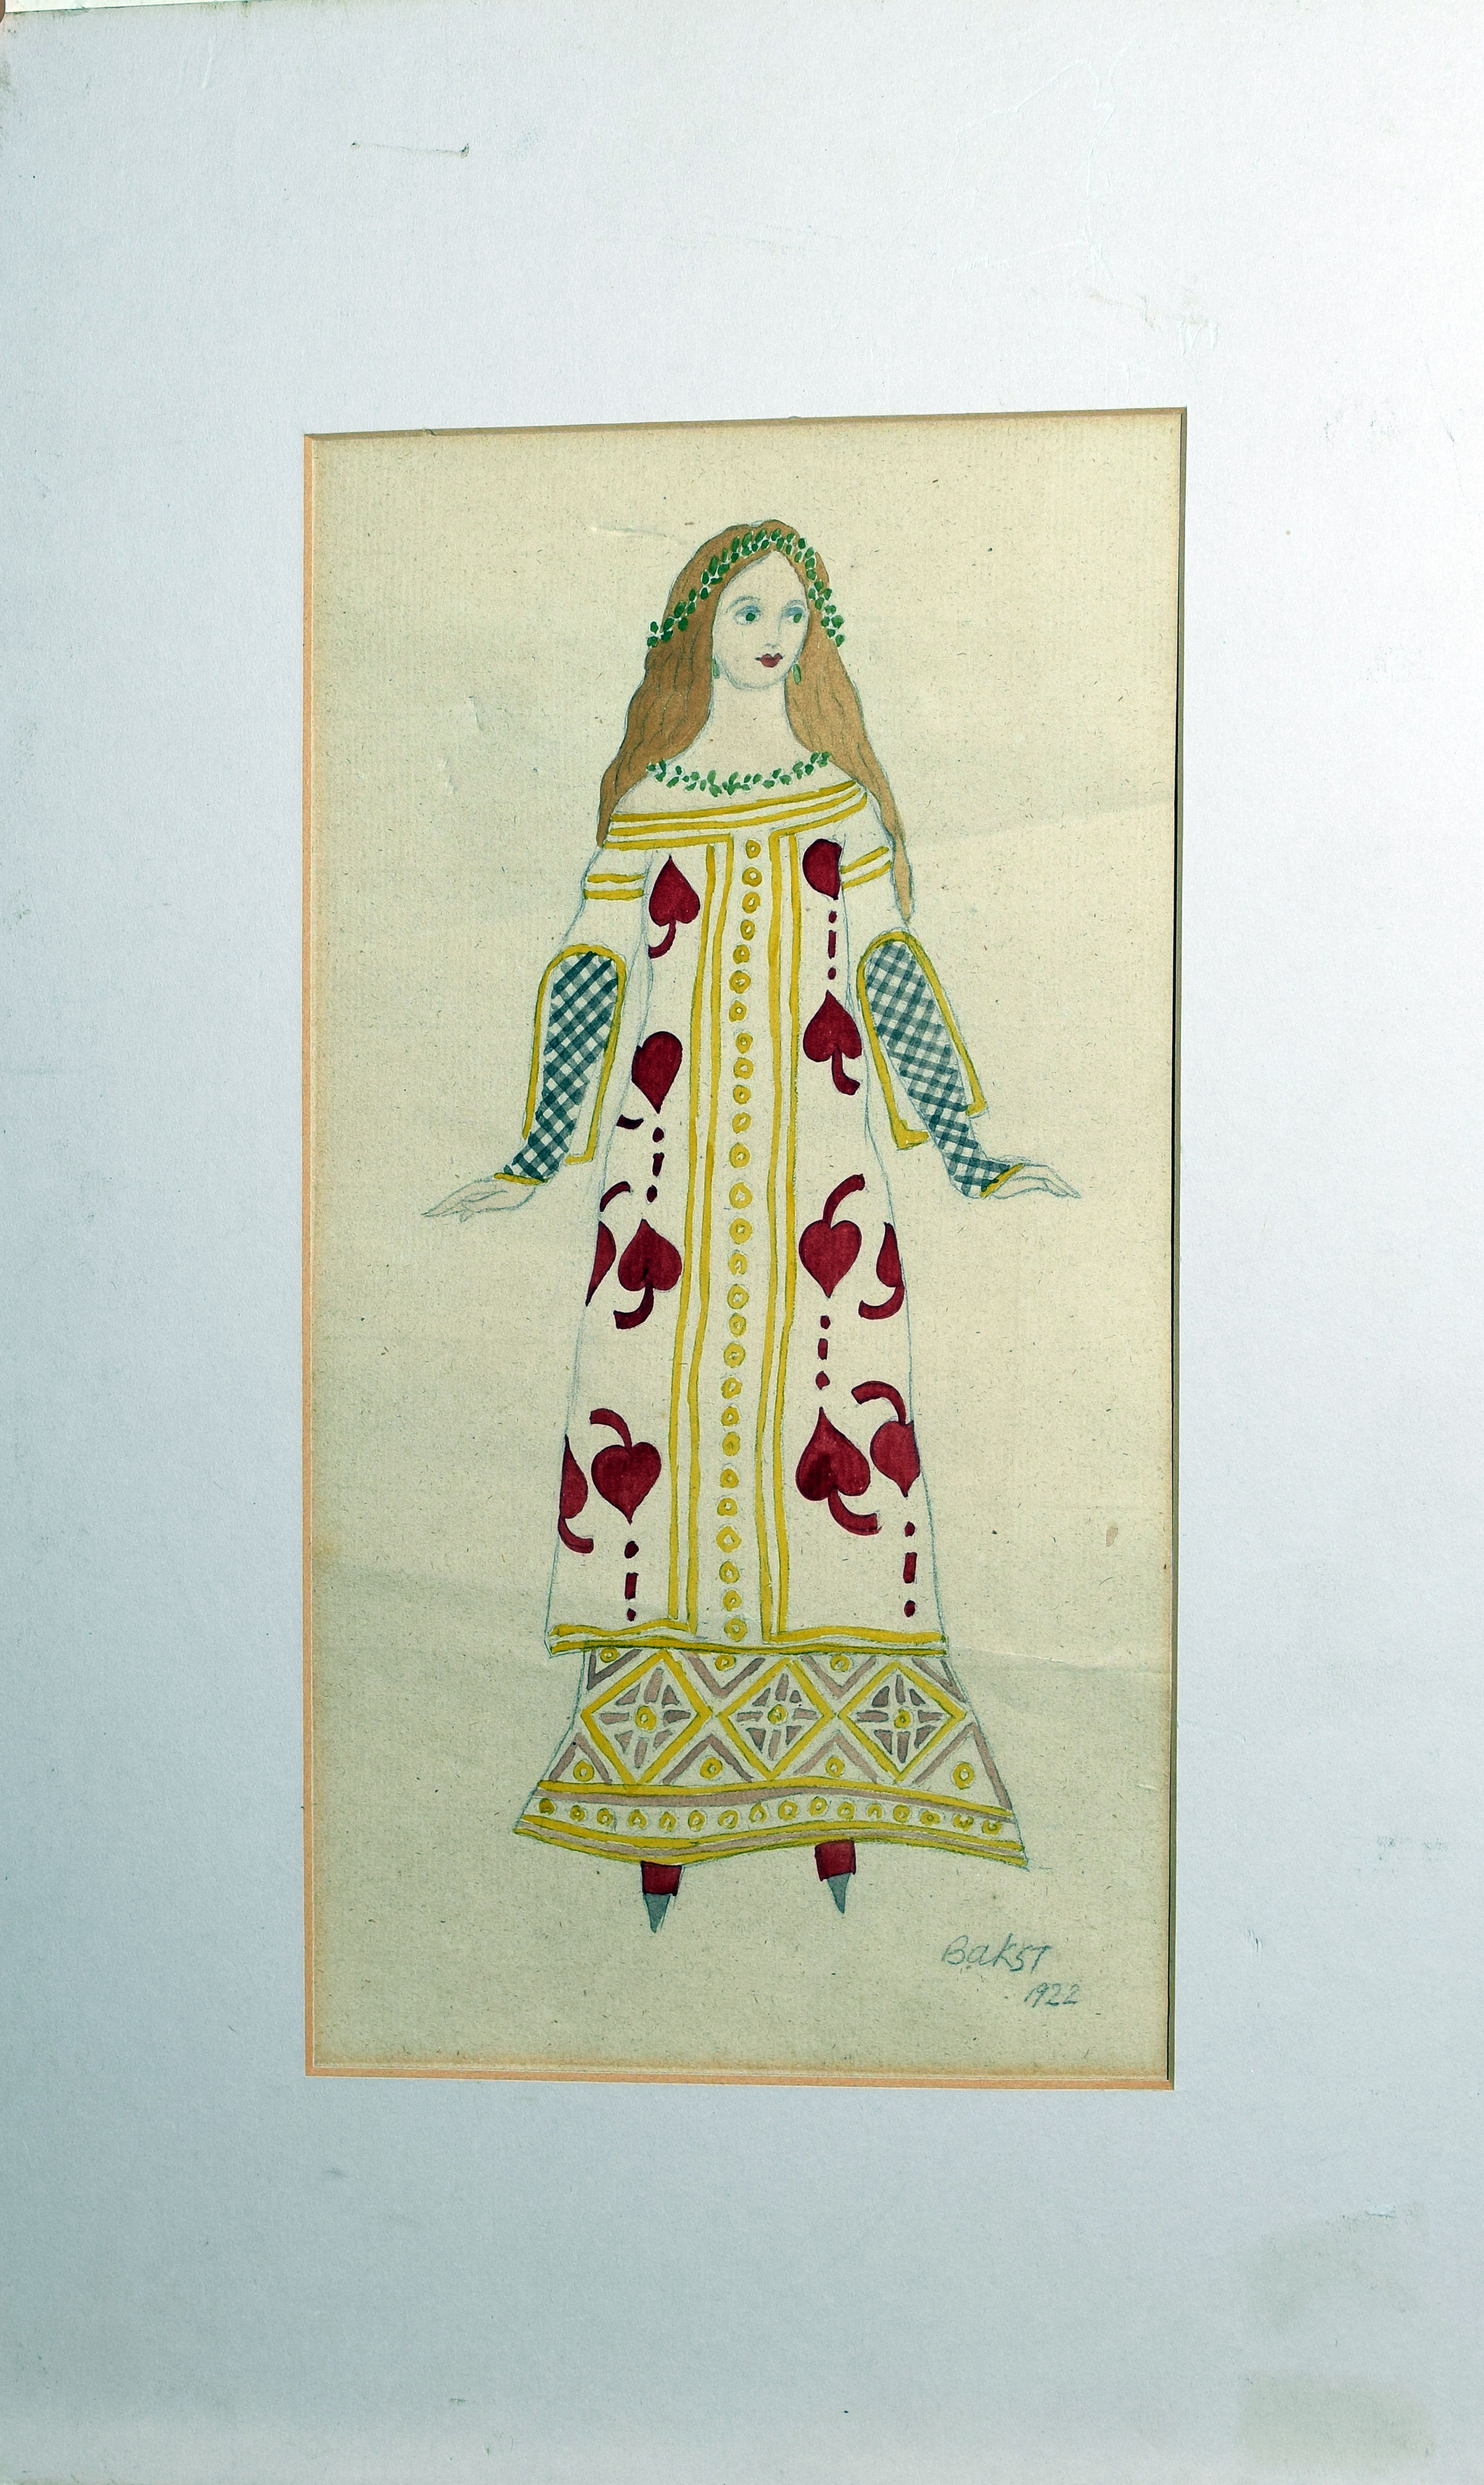 Bakst, Figure in costume, watercolour, signed and dated 1922 lower right, 31 x 16cm, mounted but